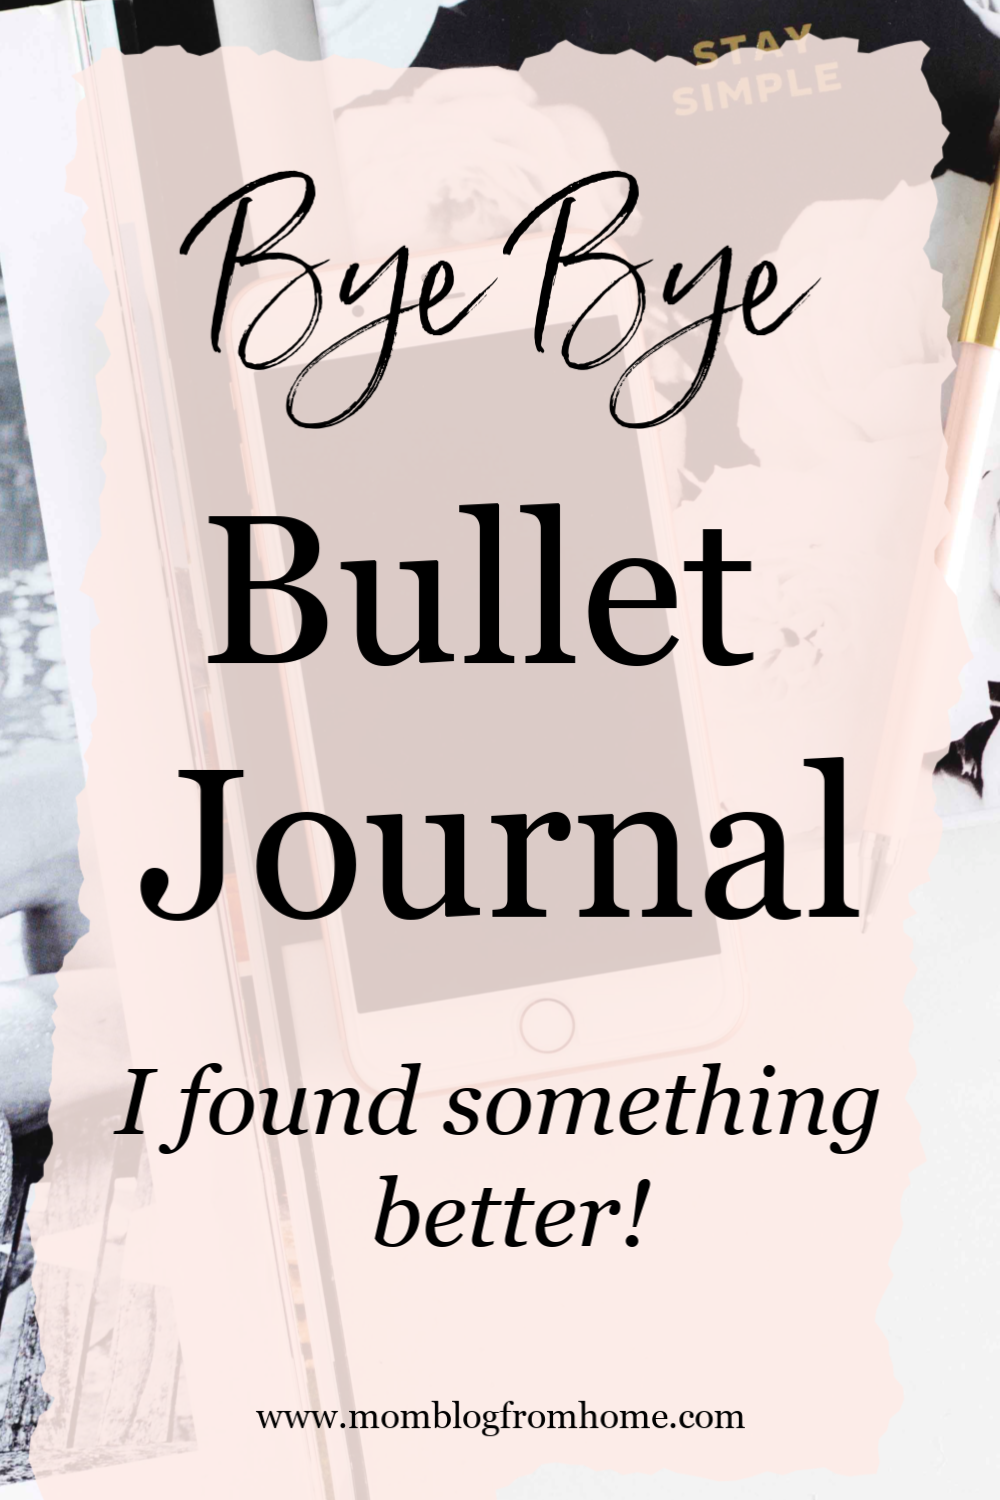 Bye Bye Bullet Journal, I found something better! - momblogfromhome